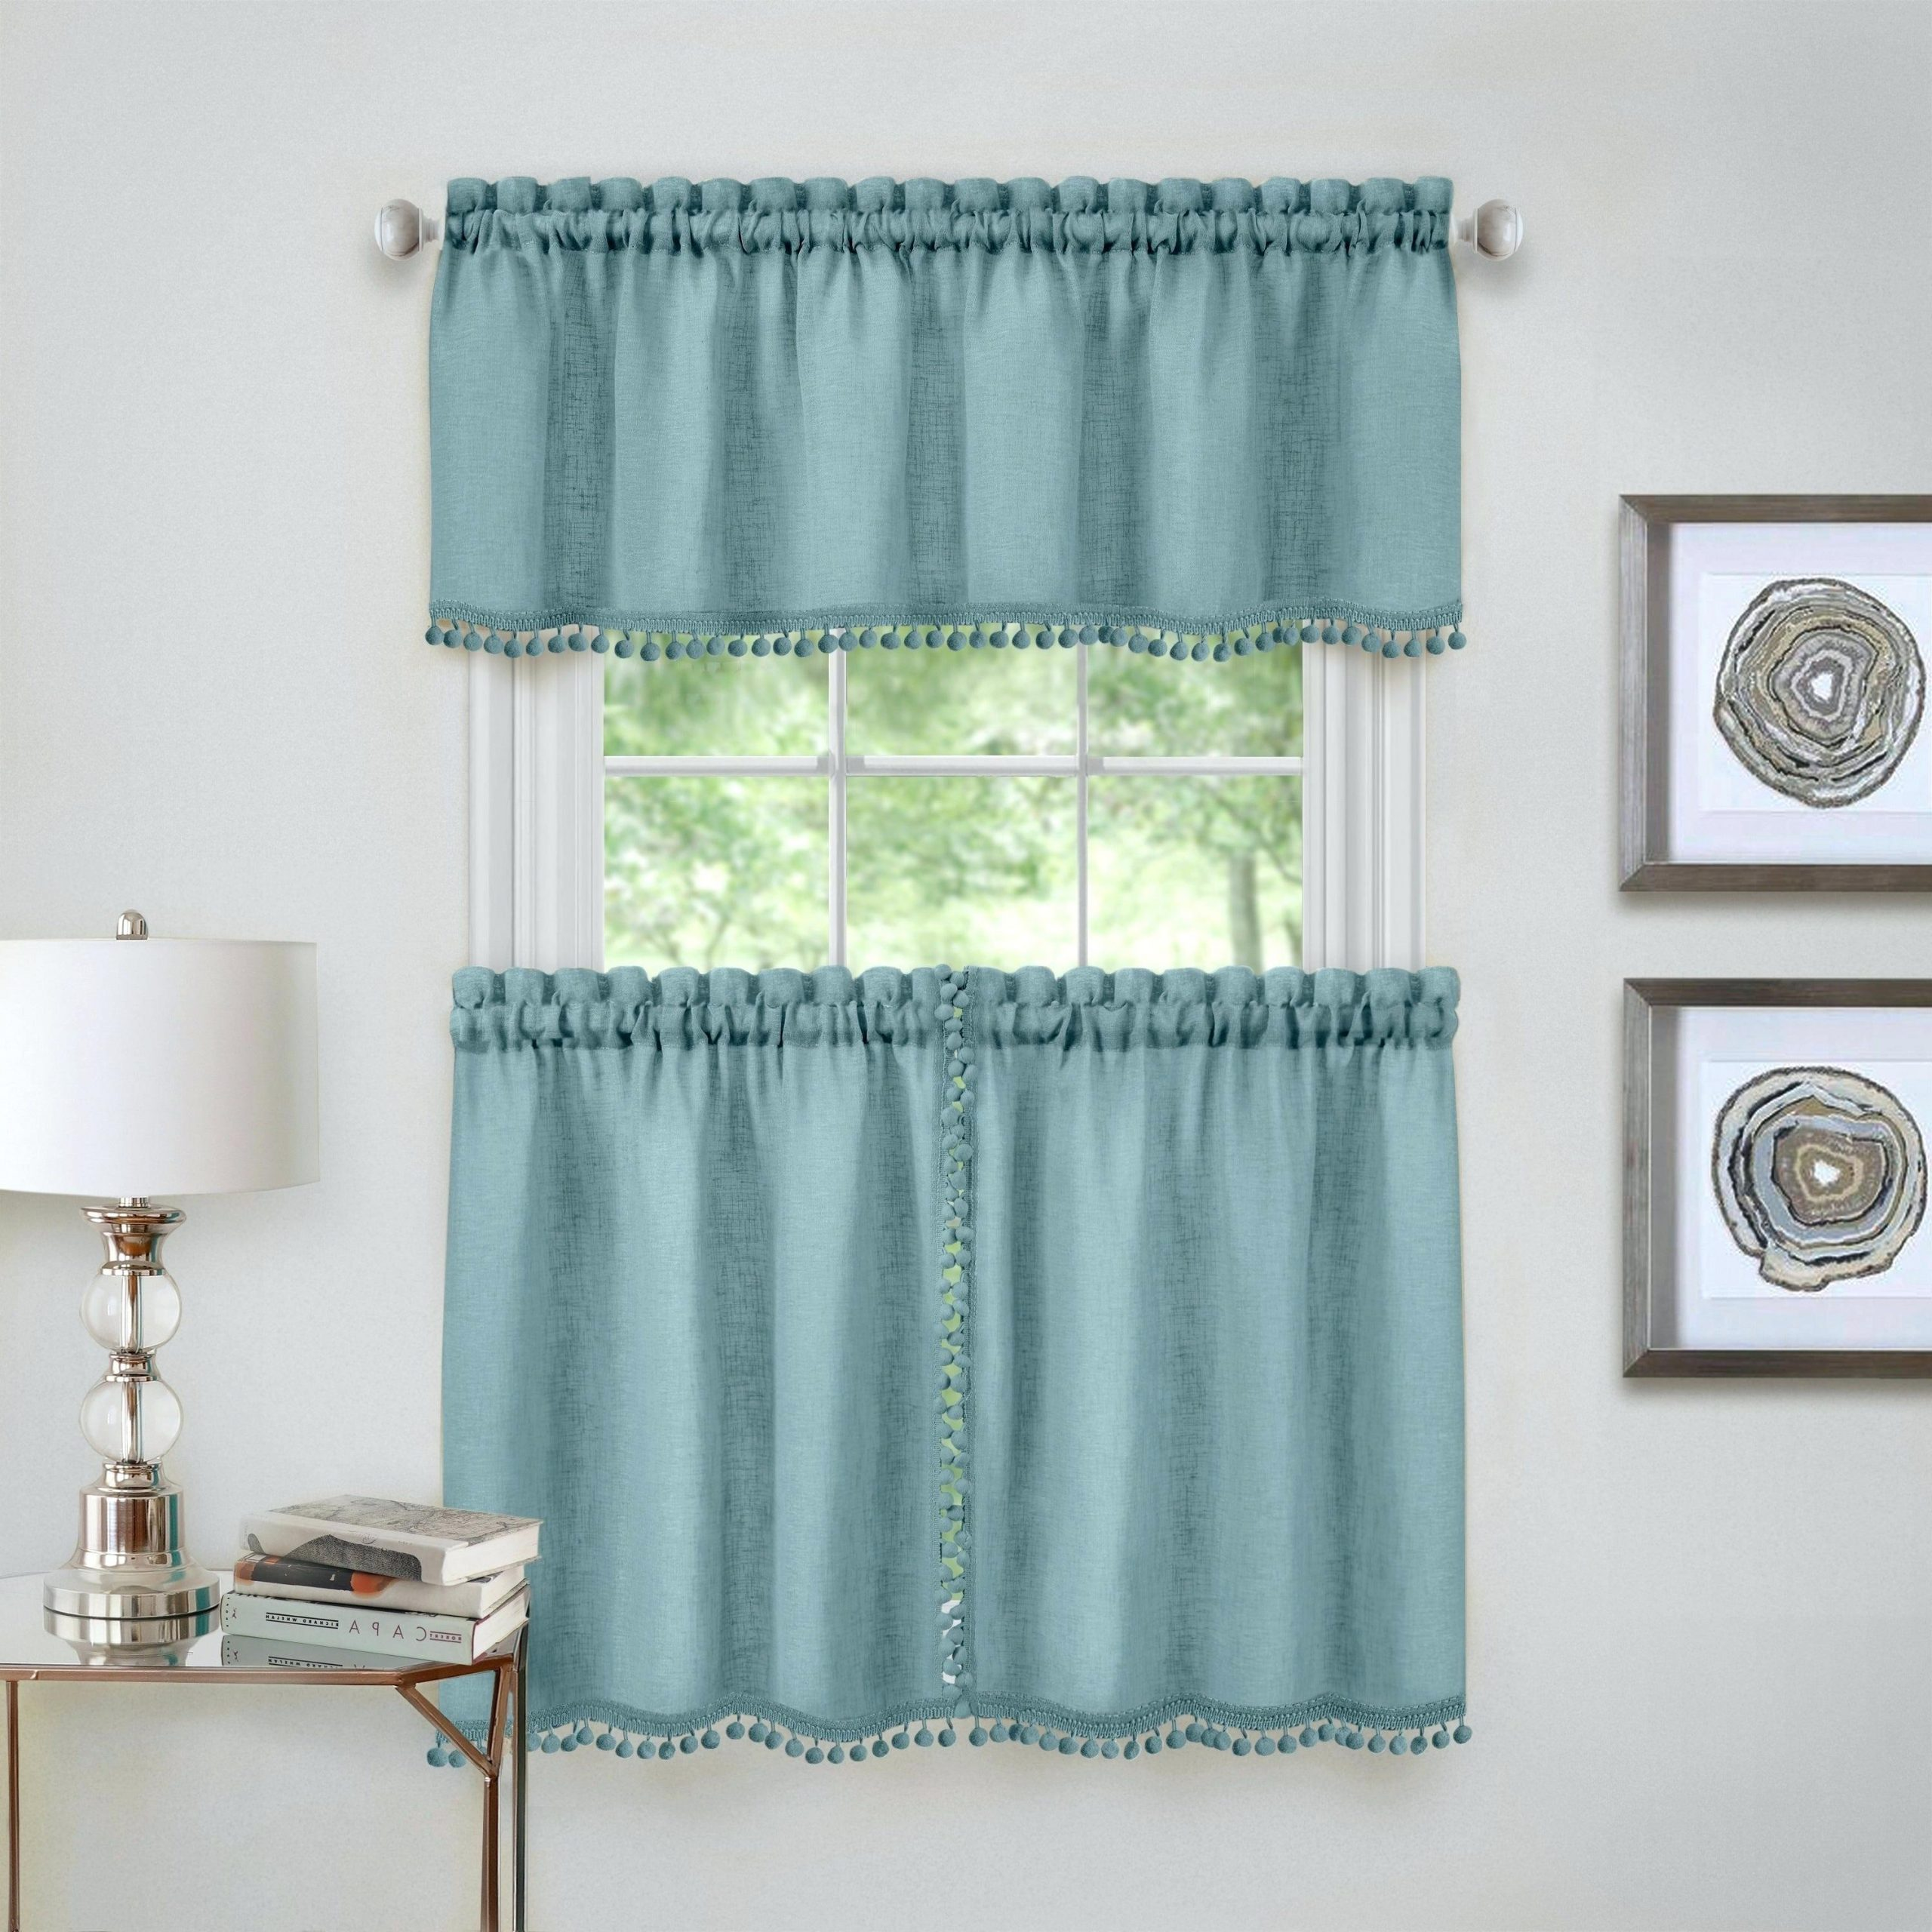 Microfiber 3 Piece Kitchen Curtain Valance And Tiers Sets For Widely Used Curtain Sets With Valance – Onsaturn.co (Gallery 15 of 20)